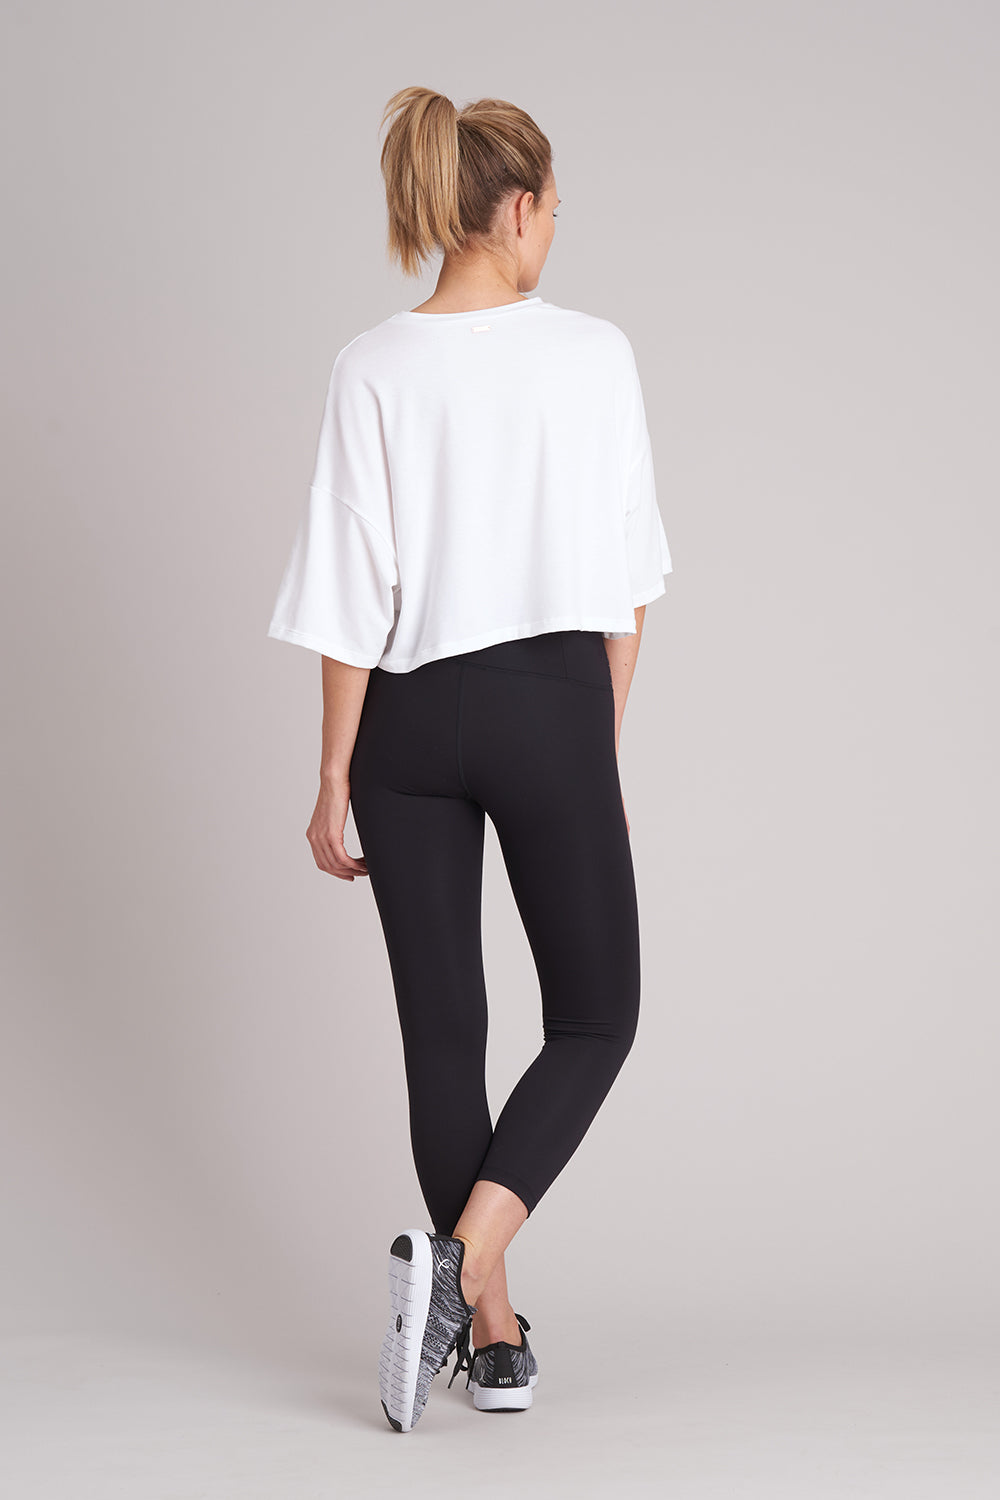 Zise Emmy Loose Crop T-Shirt